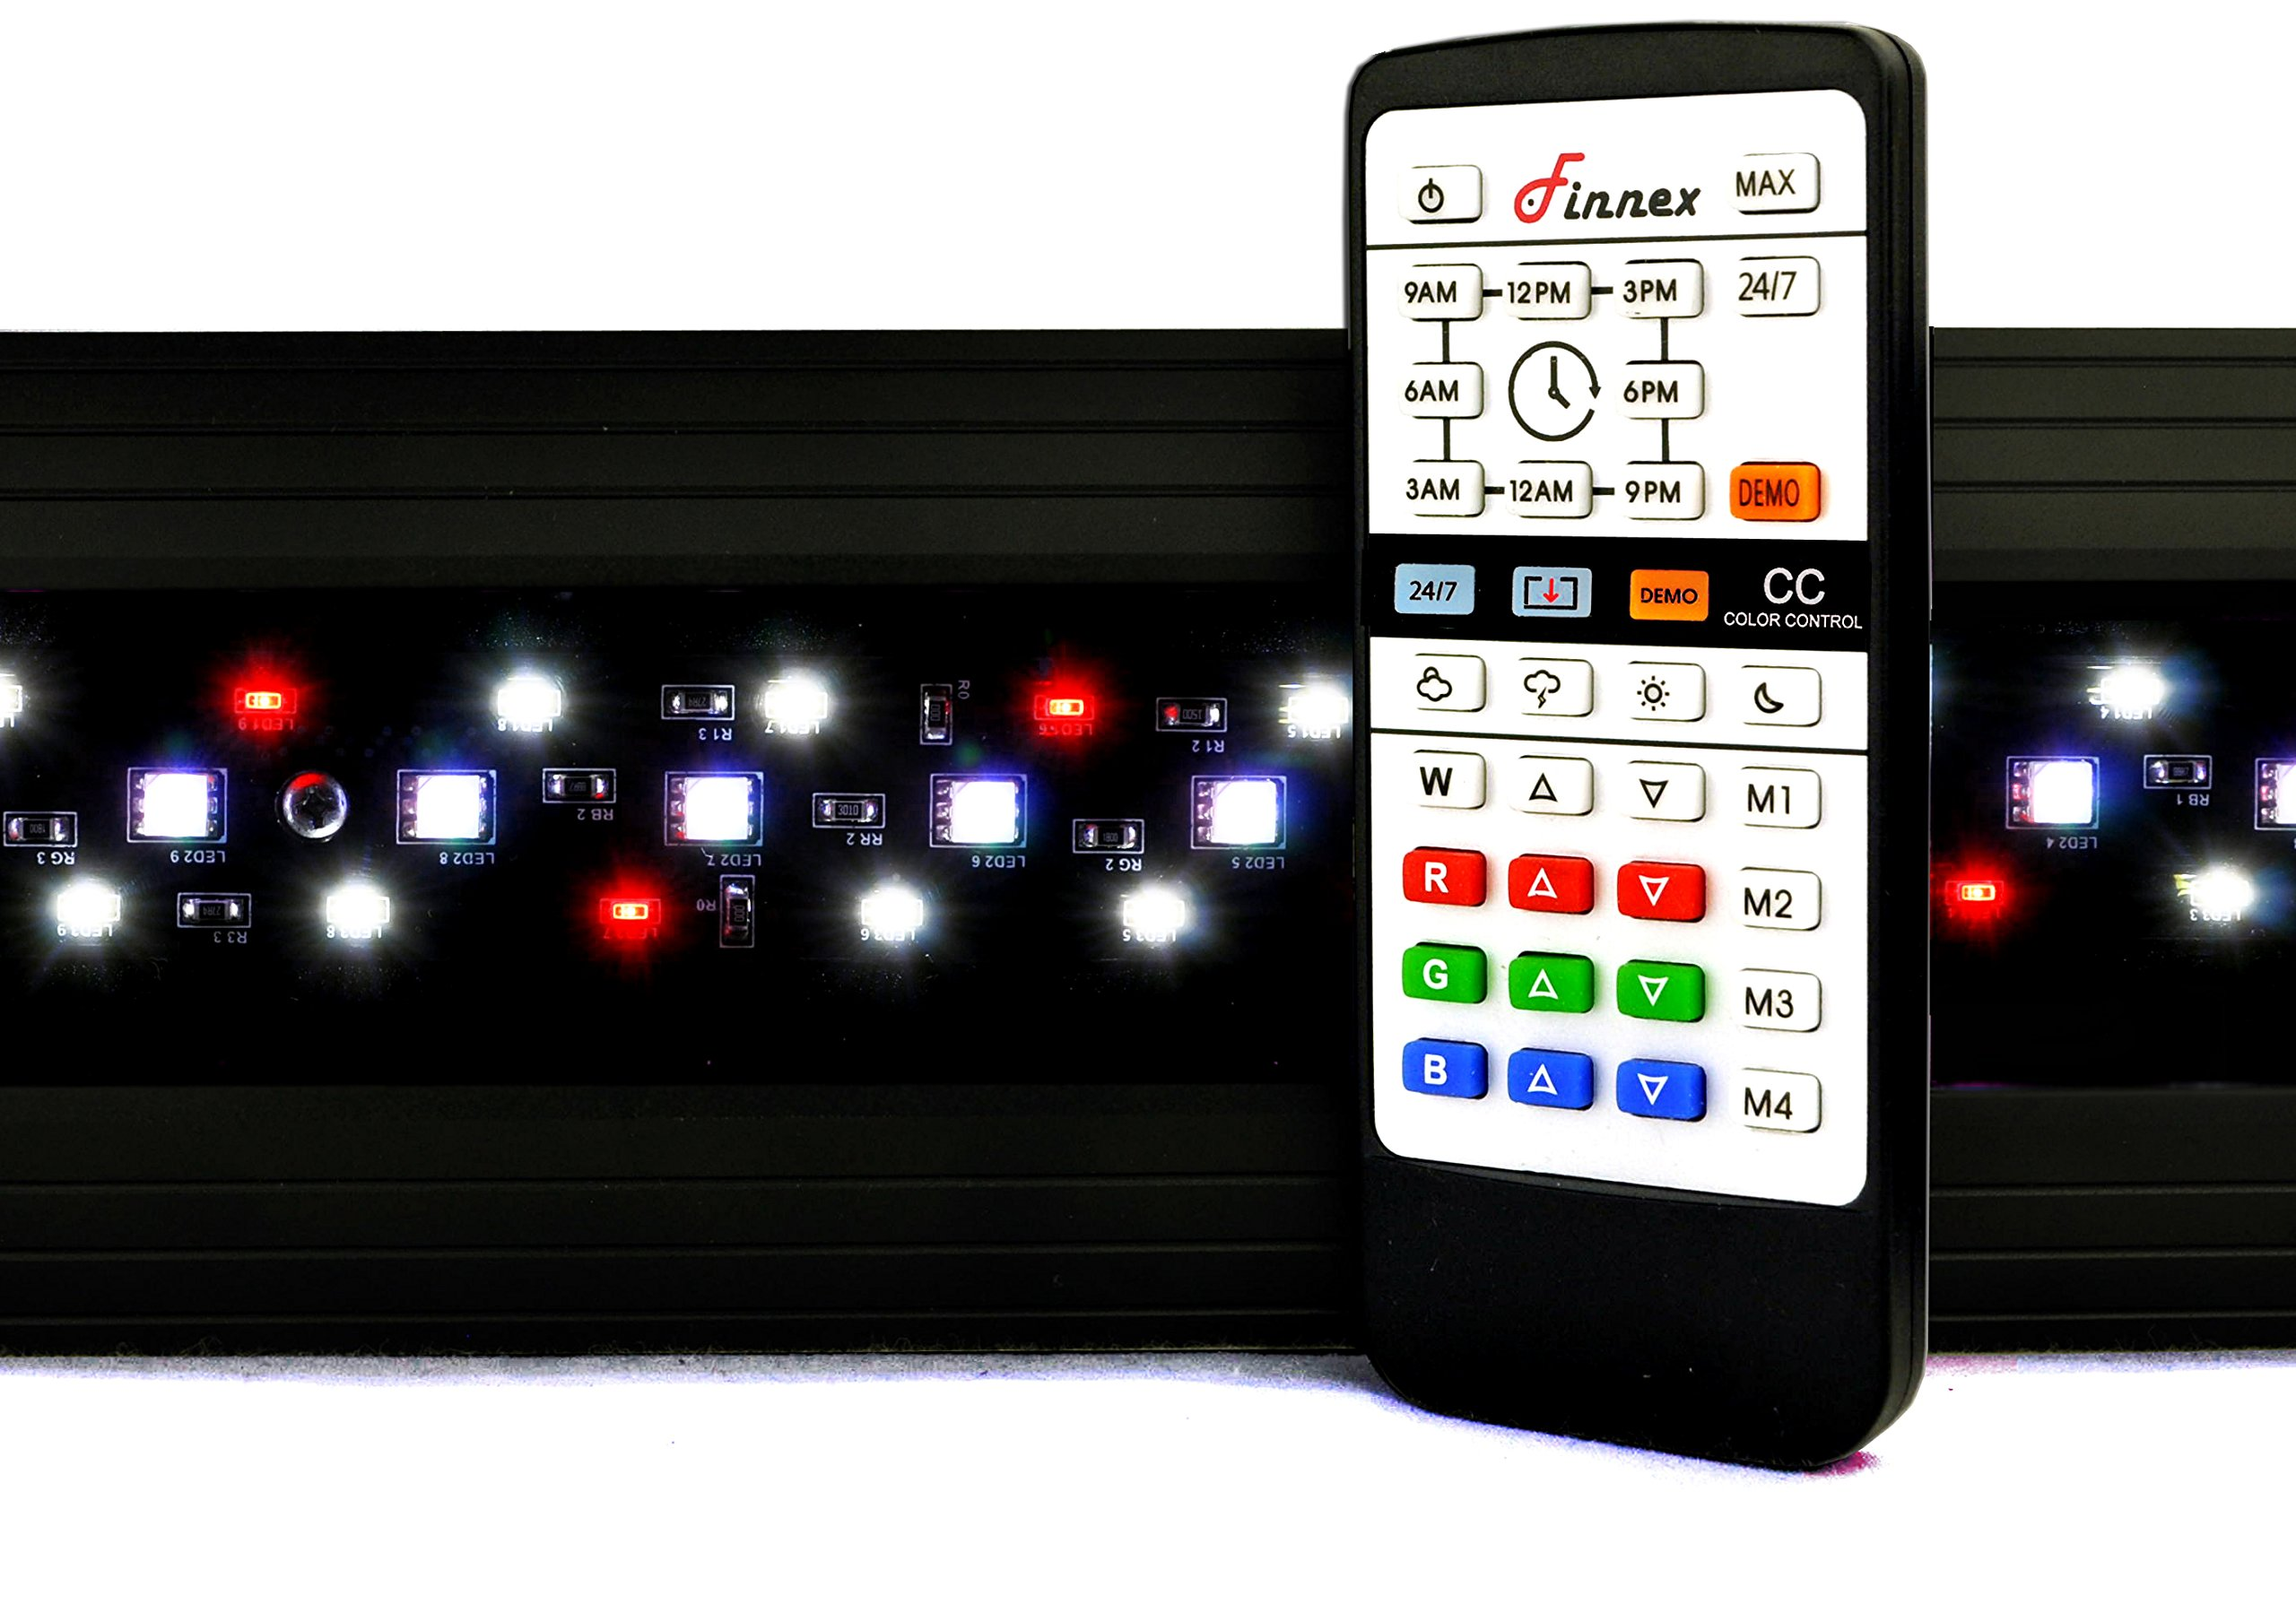 Finnex Planted+ 24/7 CRV Aquarium LED Light